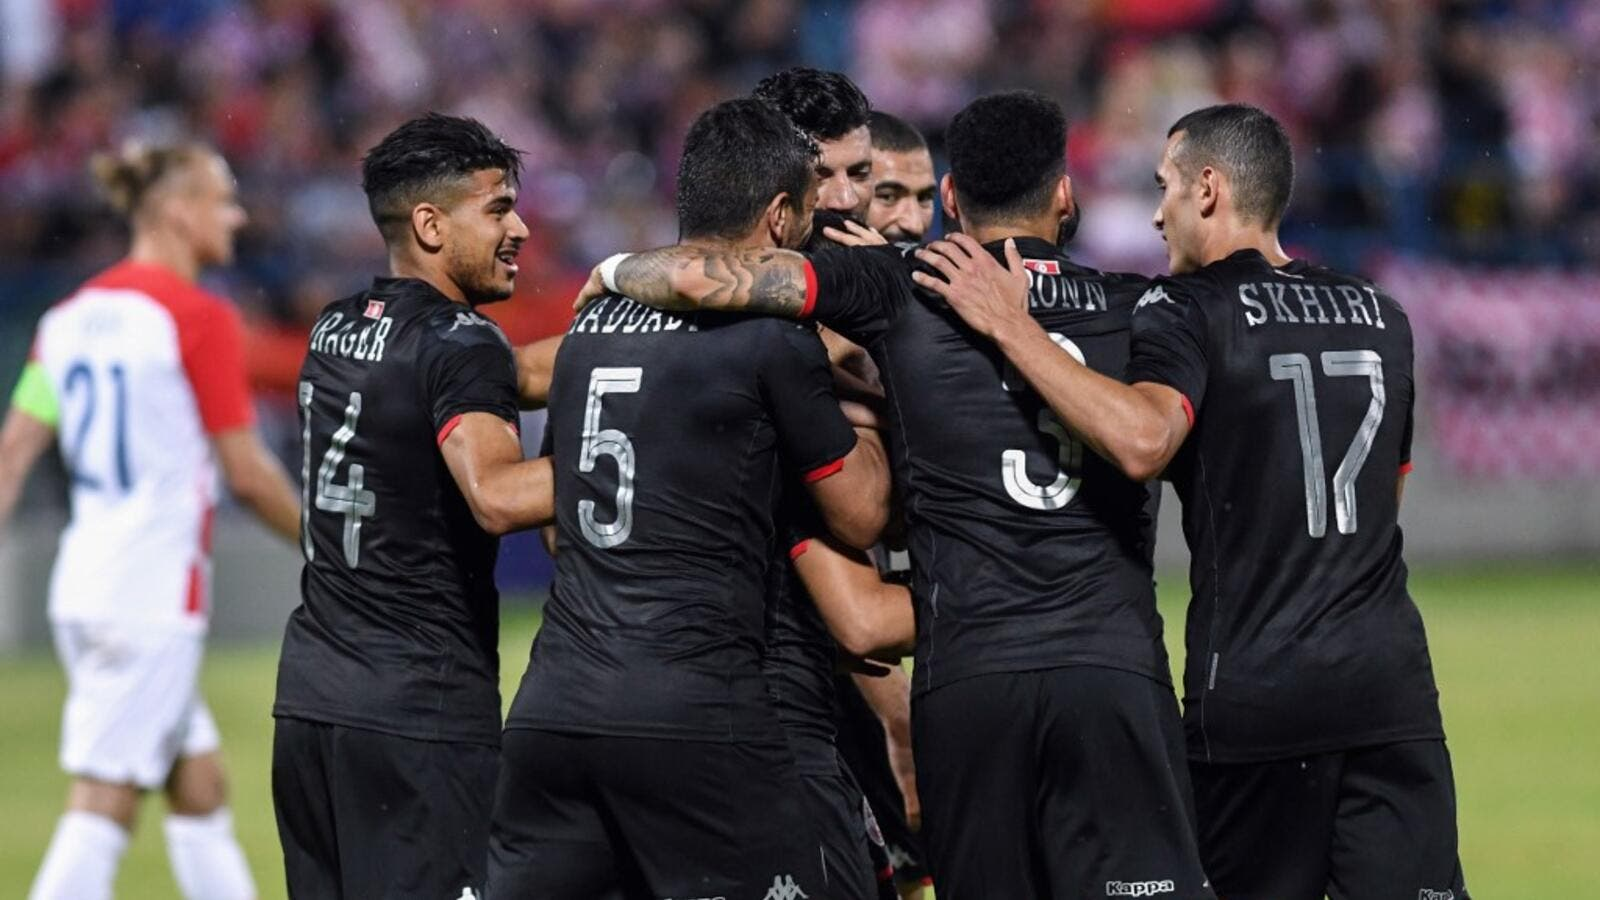 Tunisia's players celebrate after scoring a second goal during the 2019 international friendly football match between Croatia and Tunisia in Varazdin, on June 11, 2019. Denis LOVROVIC / AFP